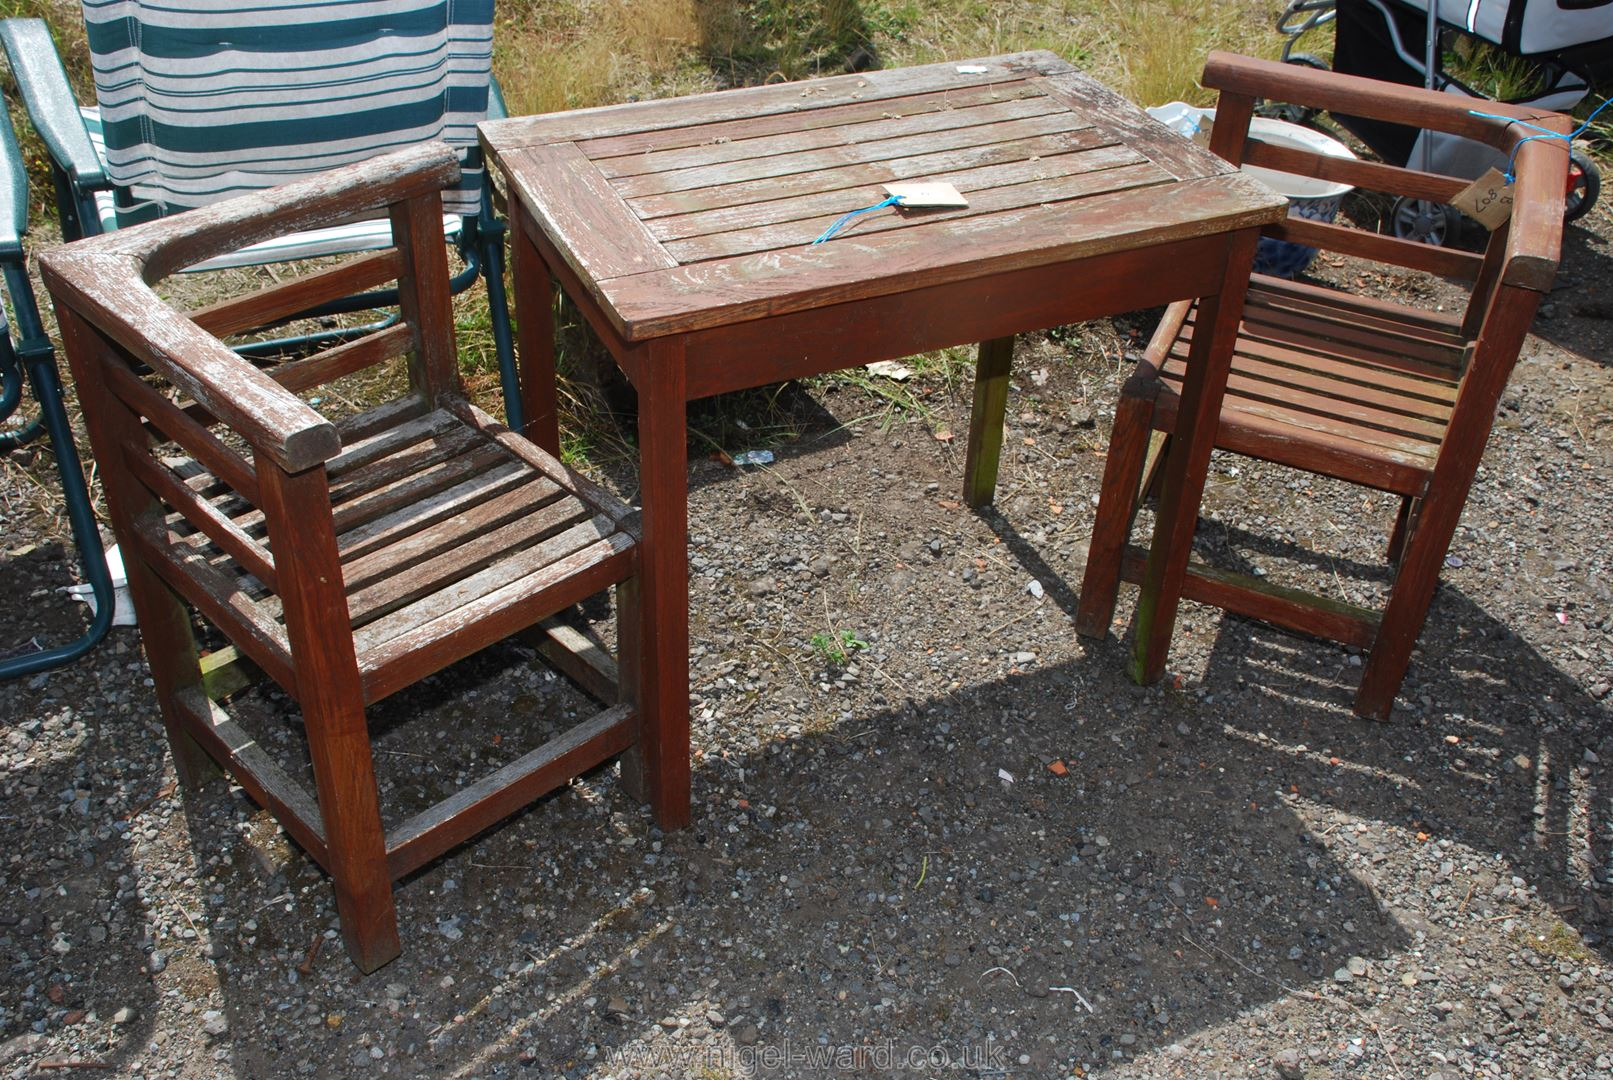 Wooden table for two set.